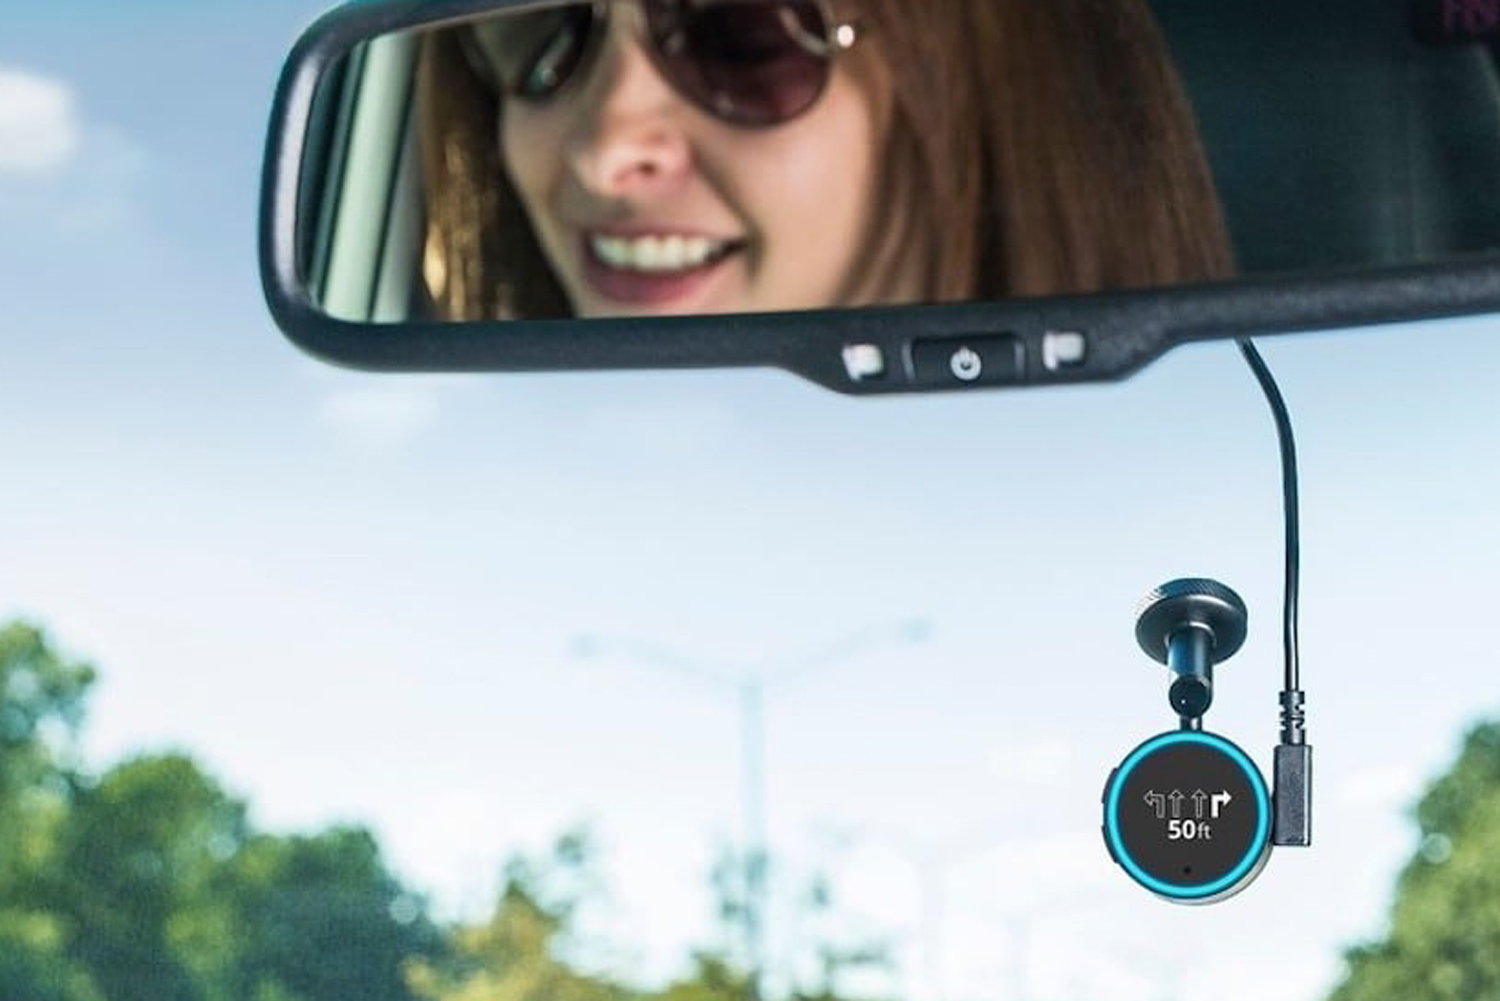 Now GPS, voice-activated automation and technology combine for a device with ever-growing capabilities.